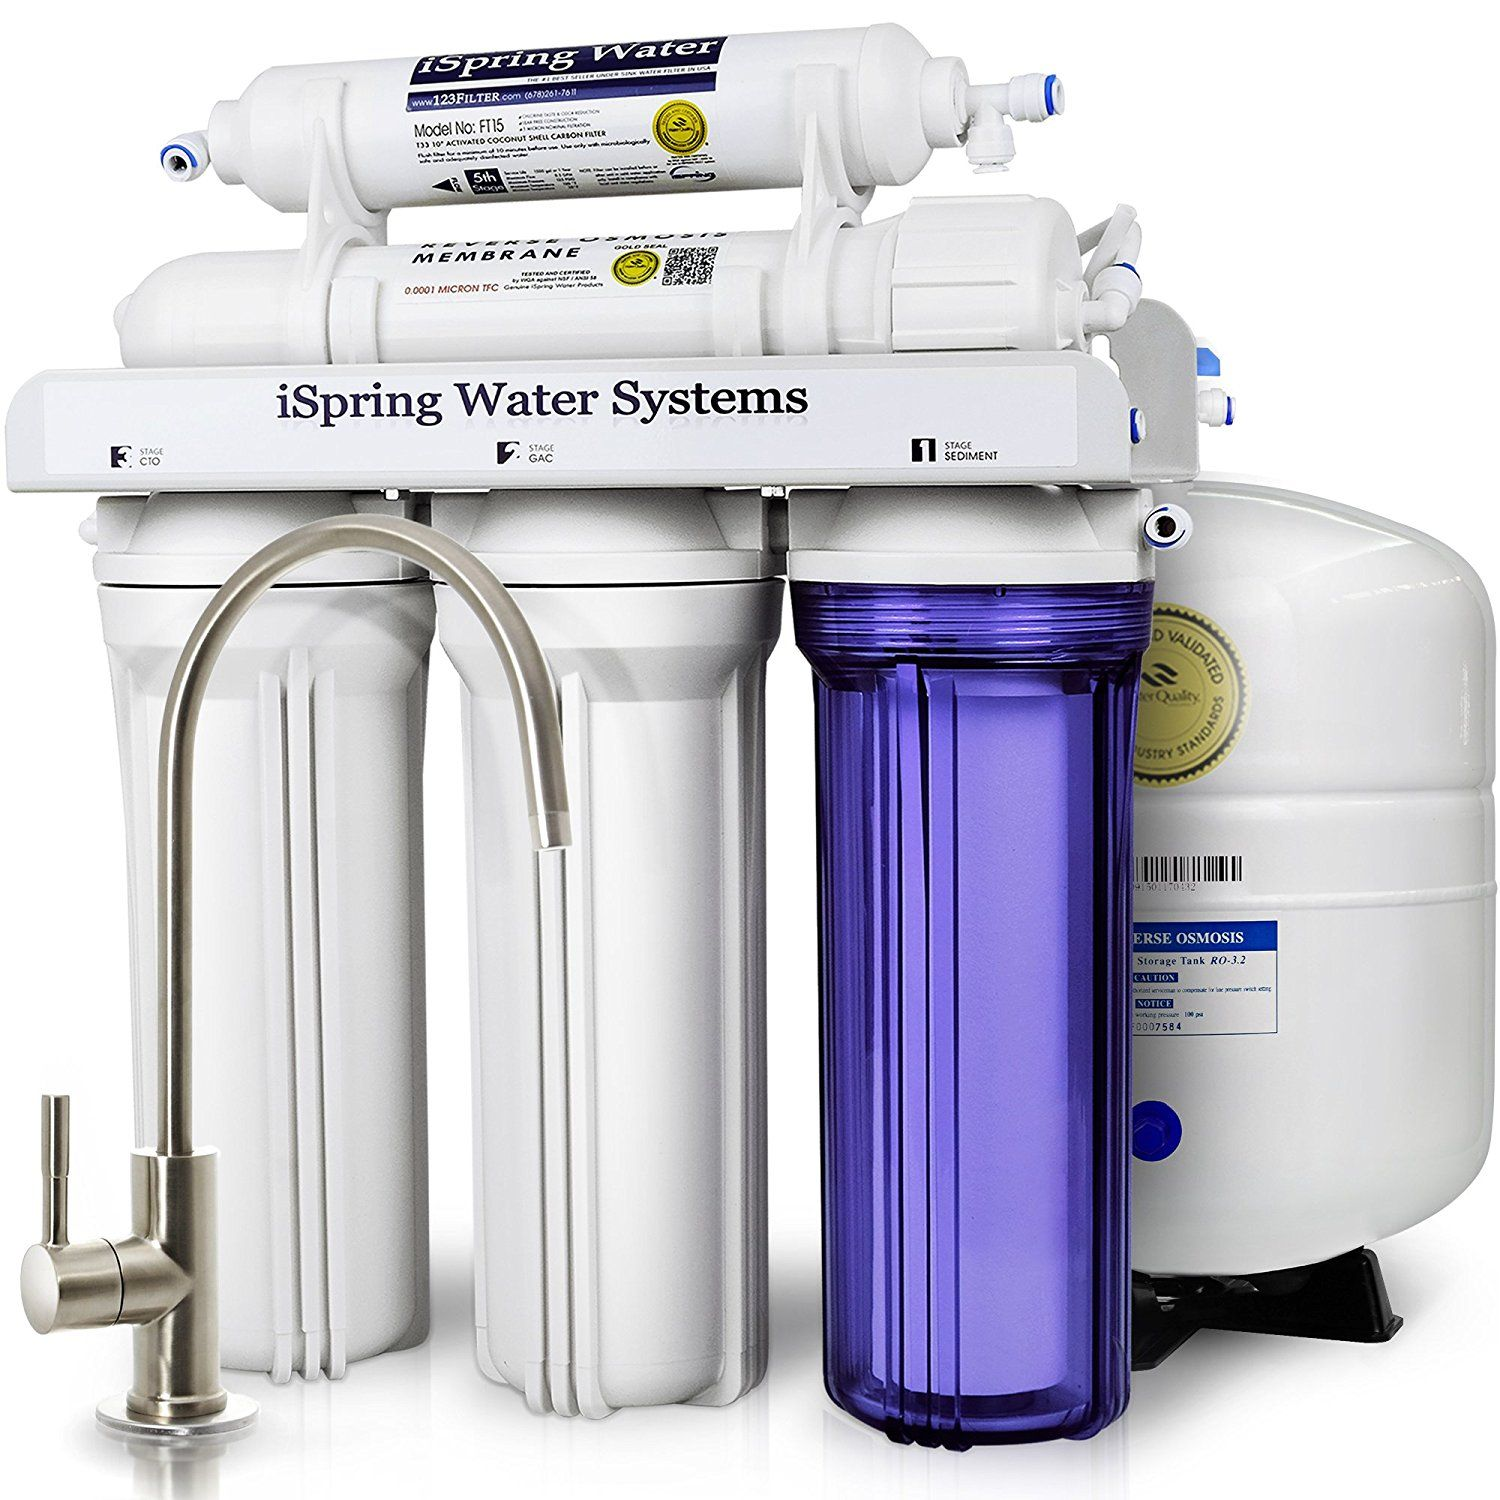 Pin By Khushi Rajpoot On Water Filtration System Reverse Osmosis Water Filter Osmosis Water Filter Best Reverse Osmosis System